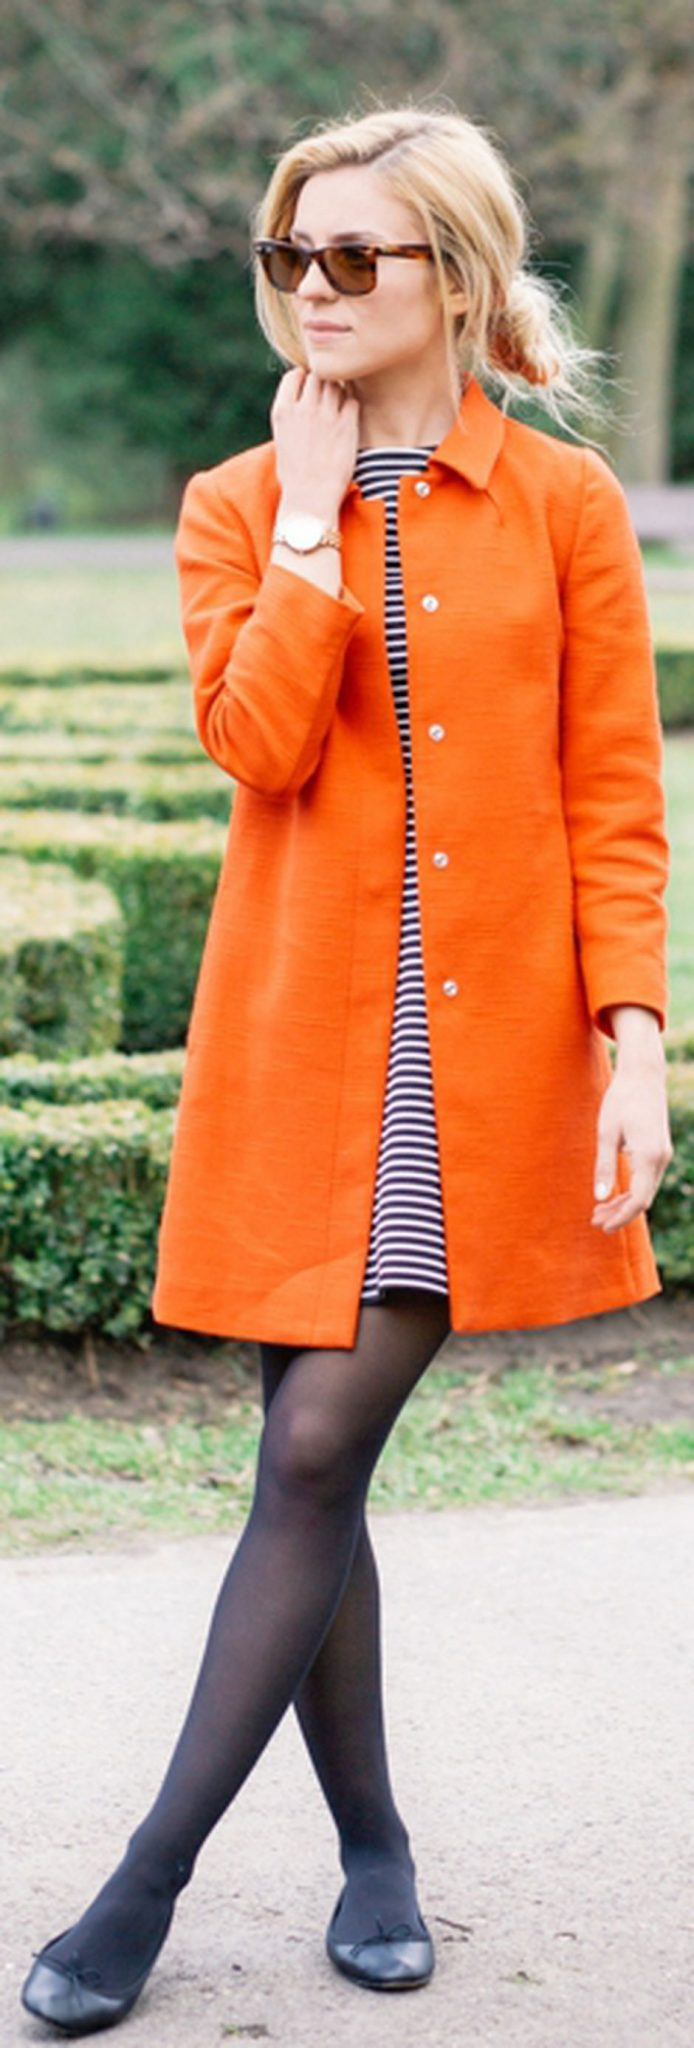 55 Orange Outfit Ideas That Make You Look Young and Fresh 50